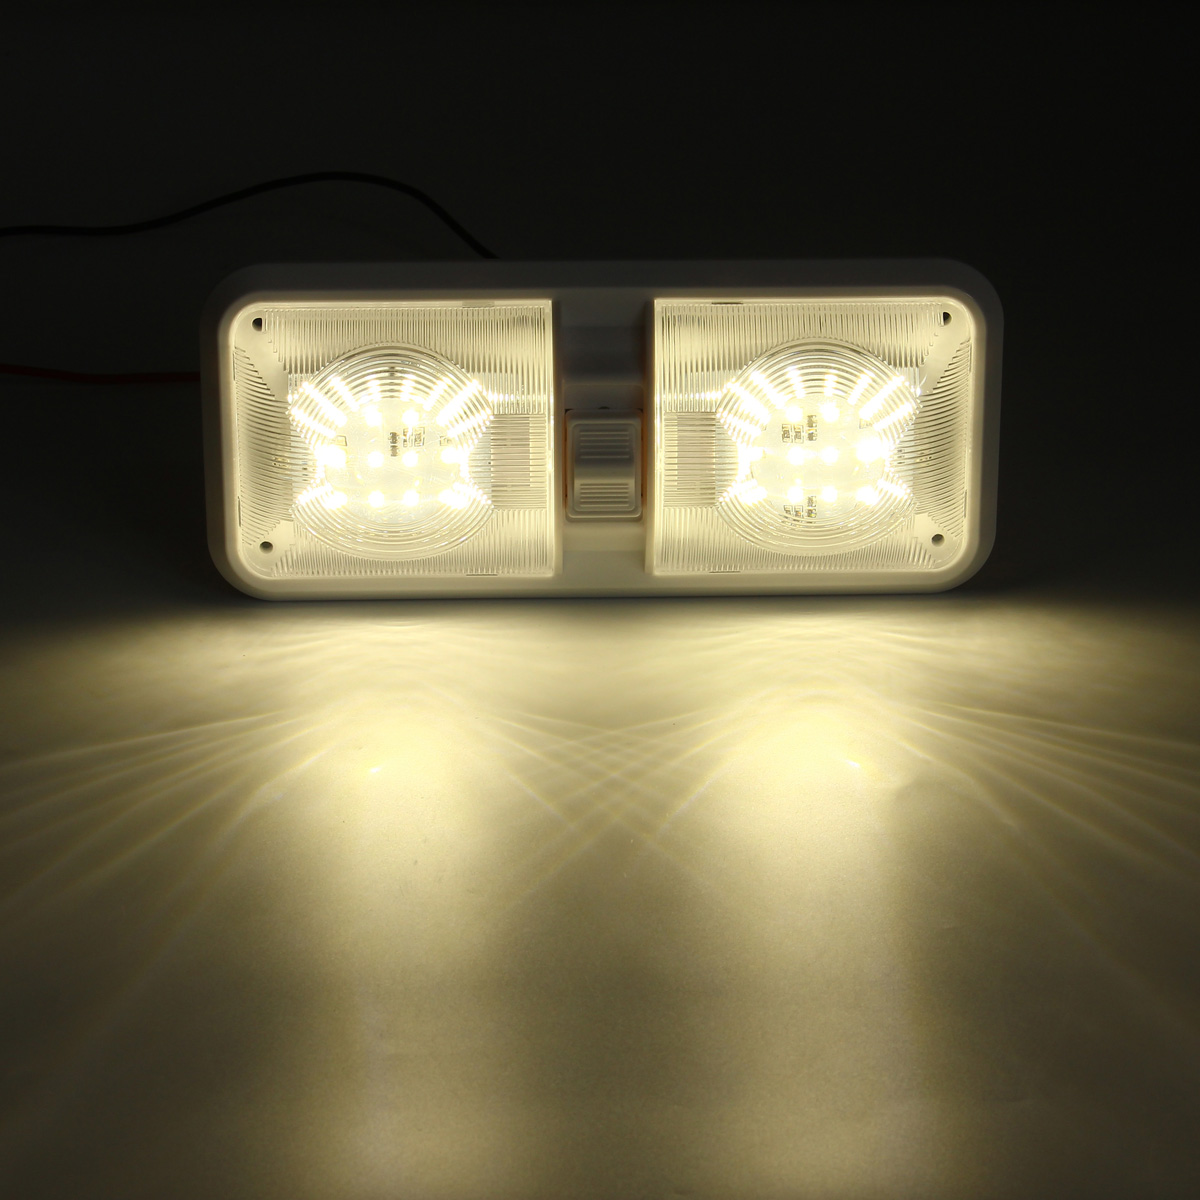 12v 48led 2835 smd interior double dome ceiling light switch for rv boat camper trailer alex nld. Black Bedroom Furniture Sets. Home Design Ideas